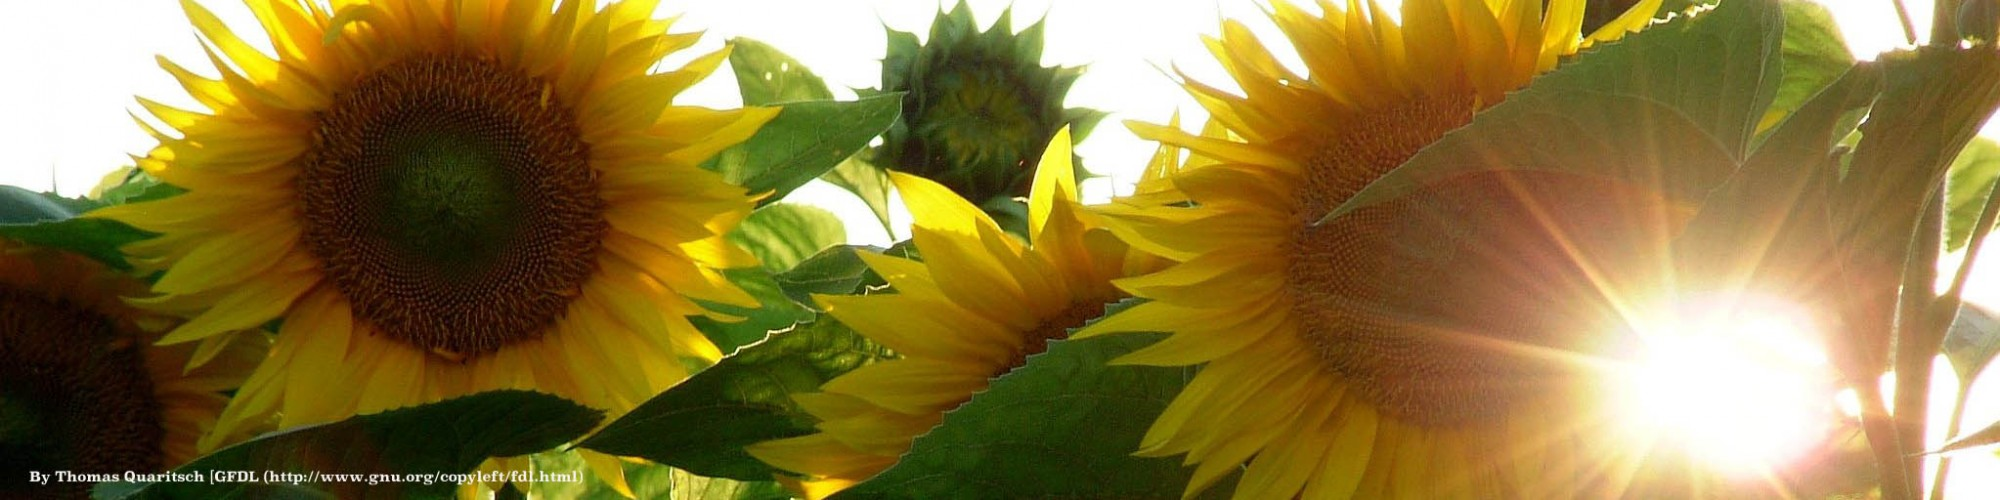 cropped-banner-sunflower2.jpg